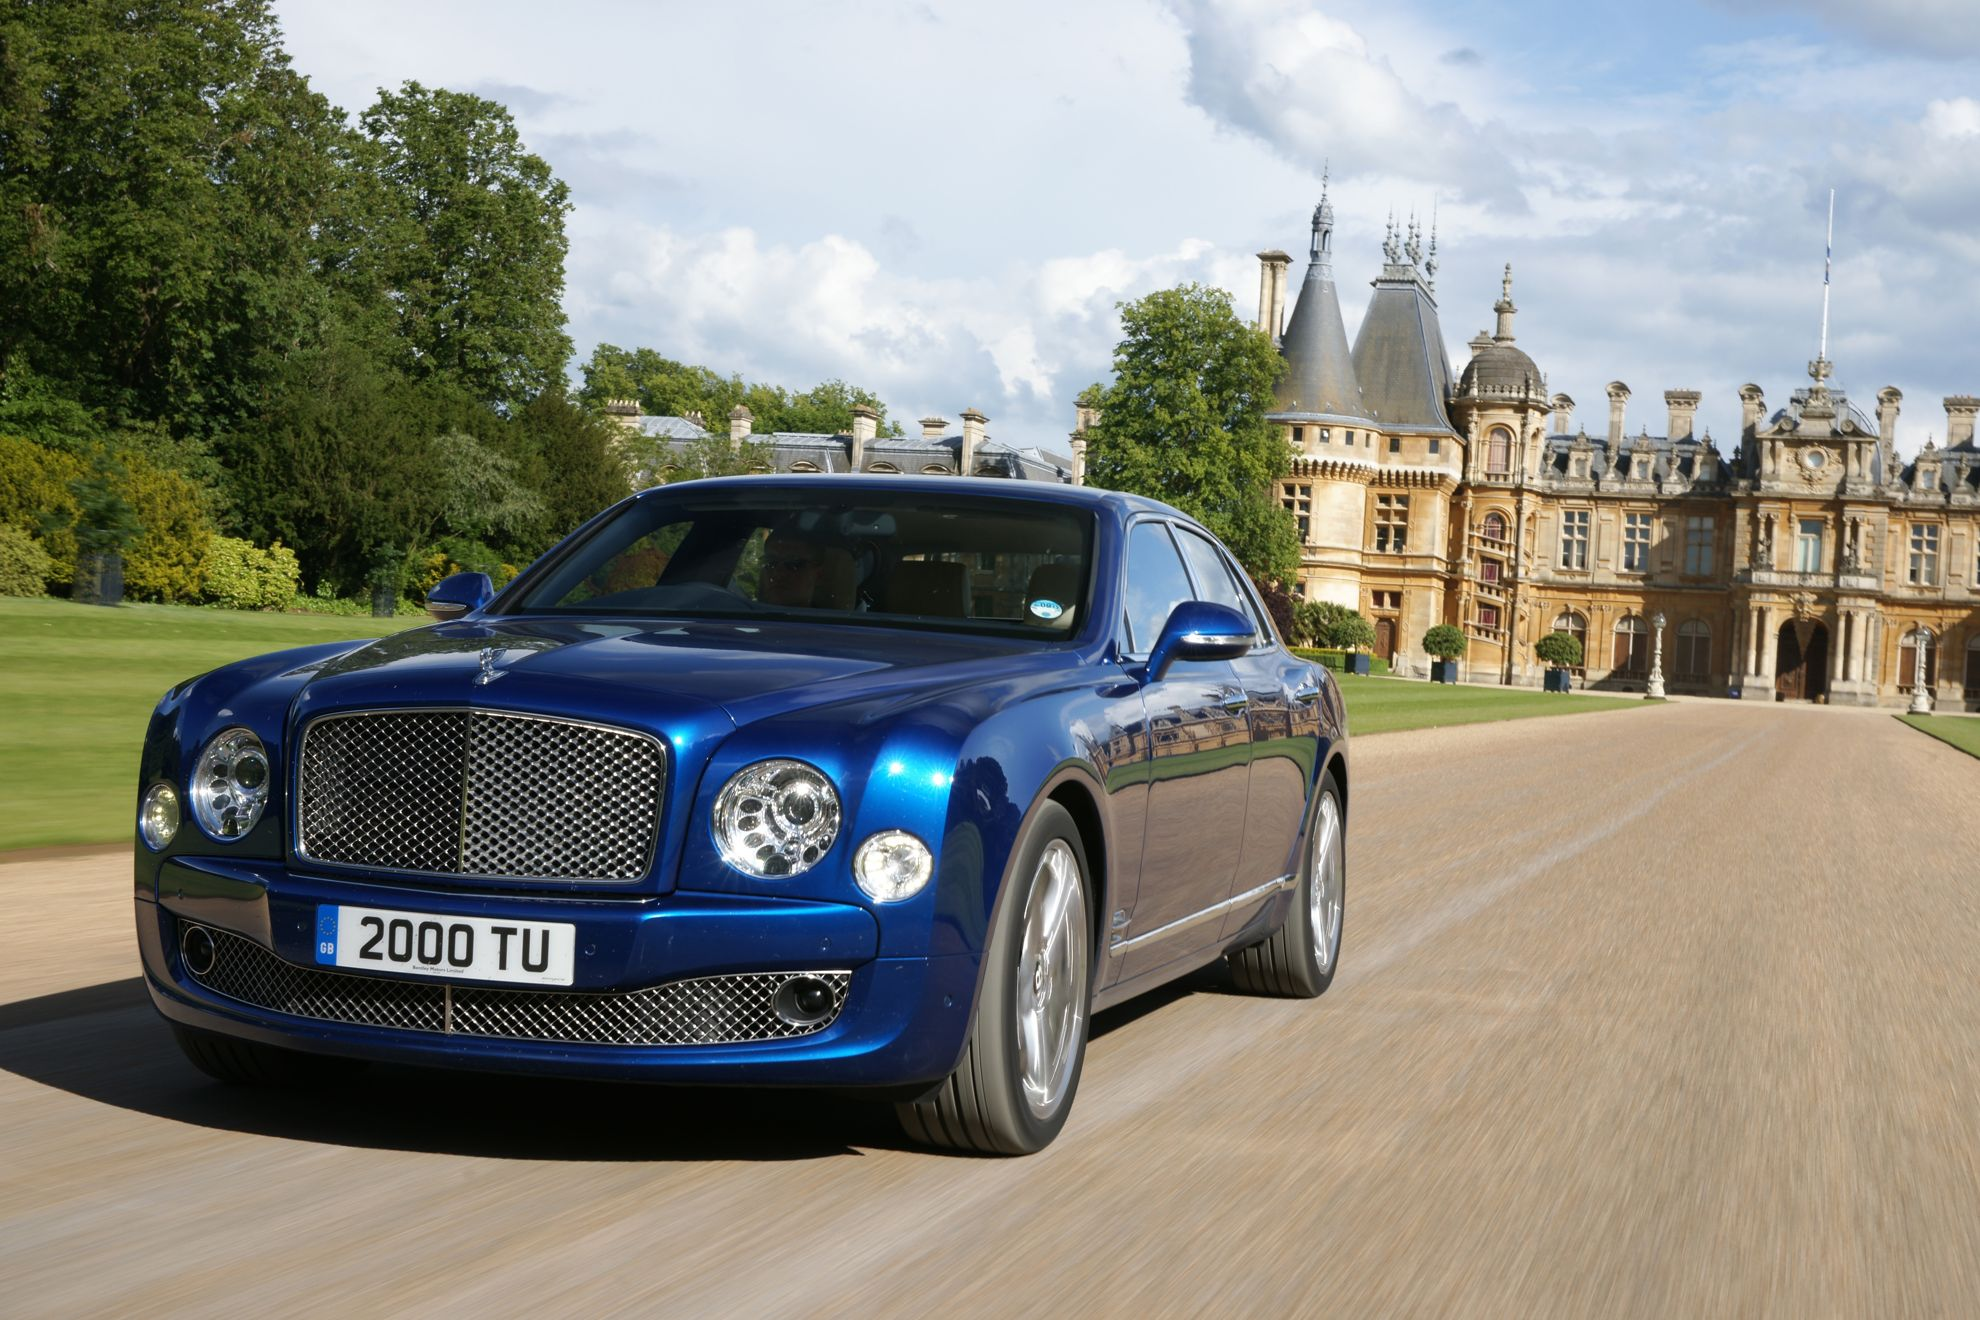 Bentley UK